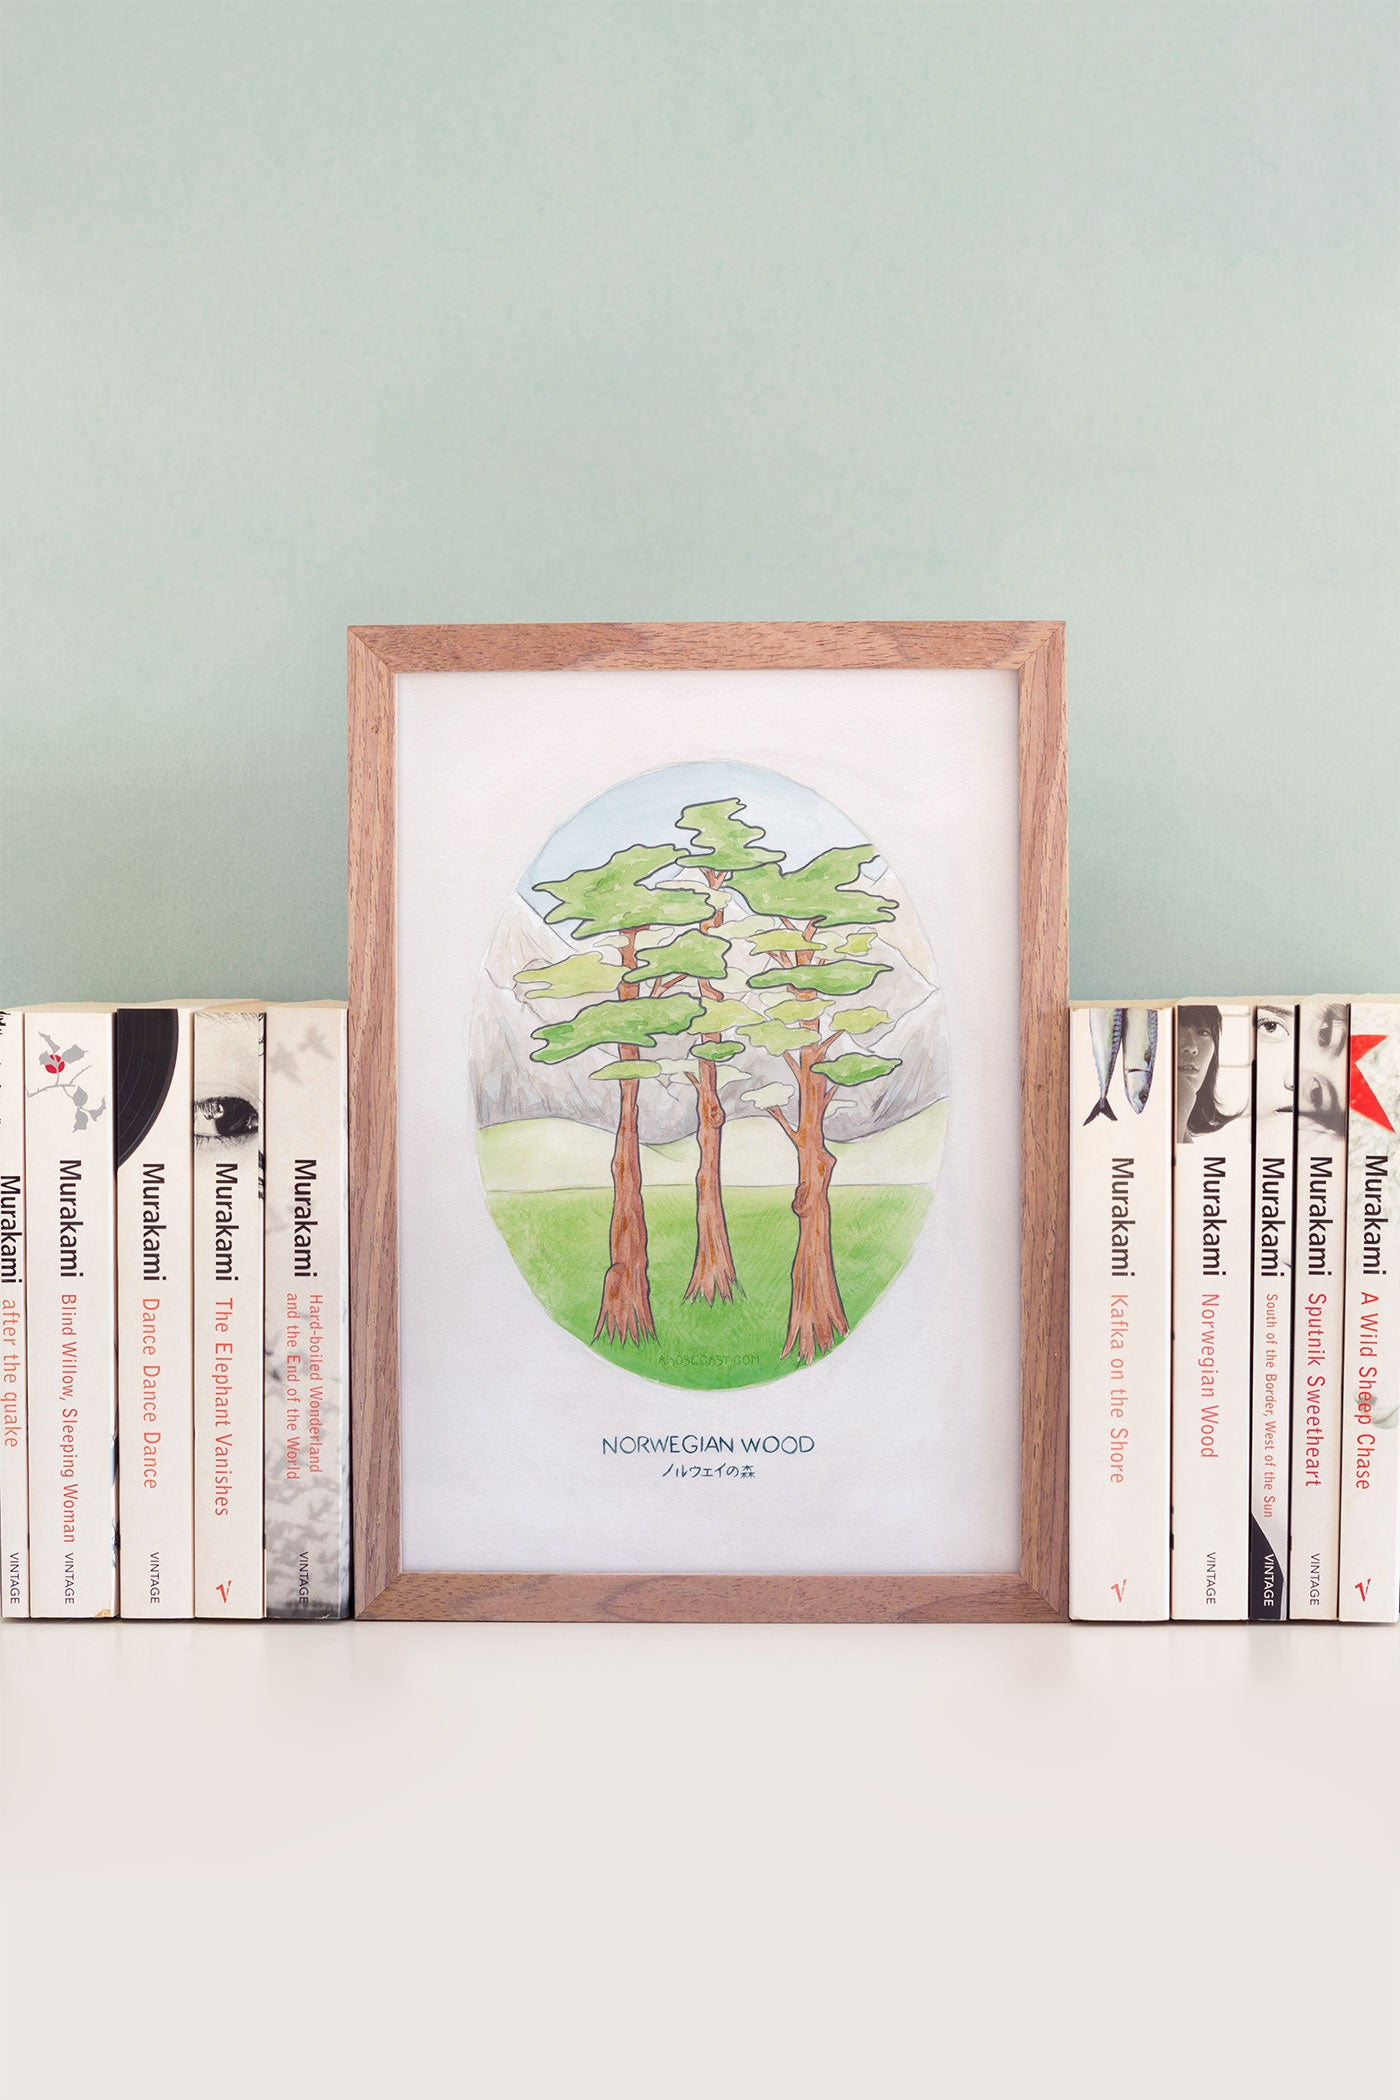 Haruki Murakami's Norwegian Wood Novel Illustration Art Print - A Rose Cast